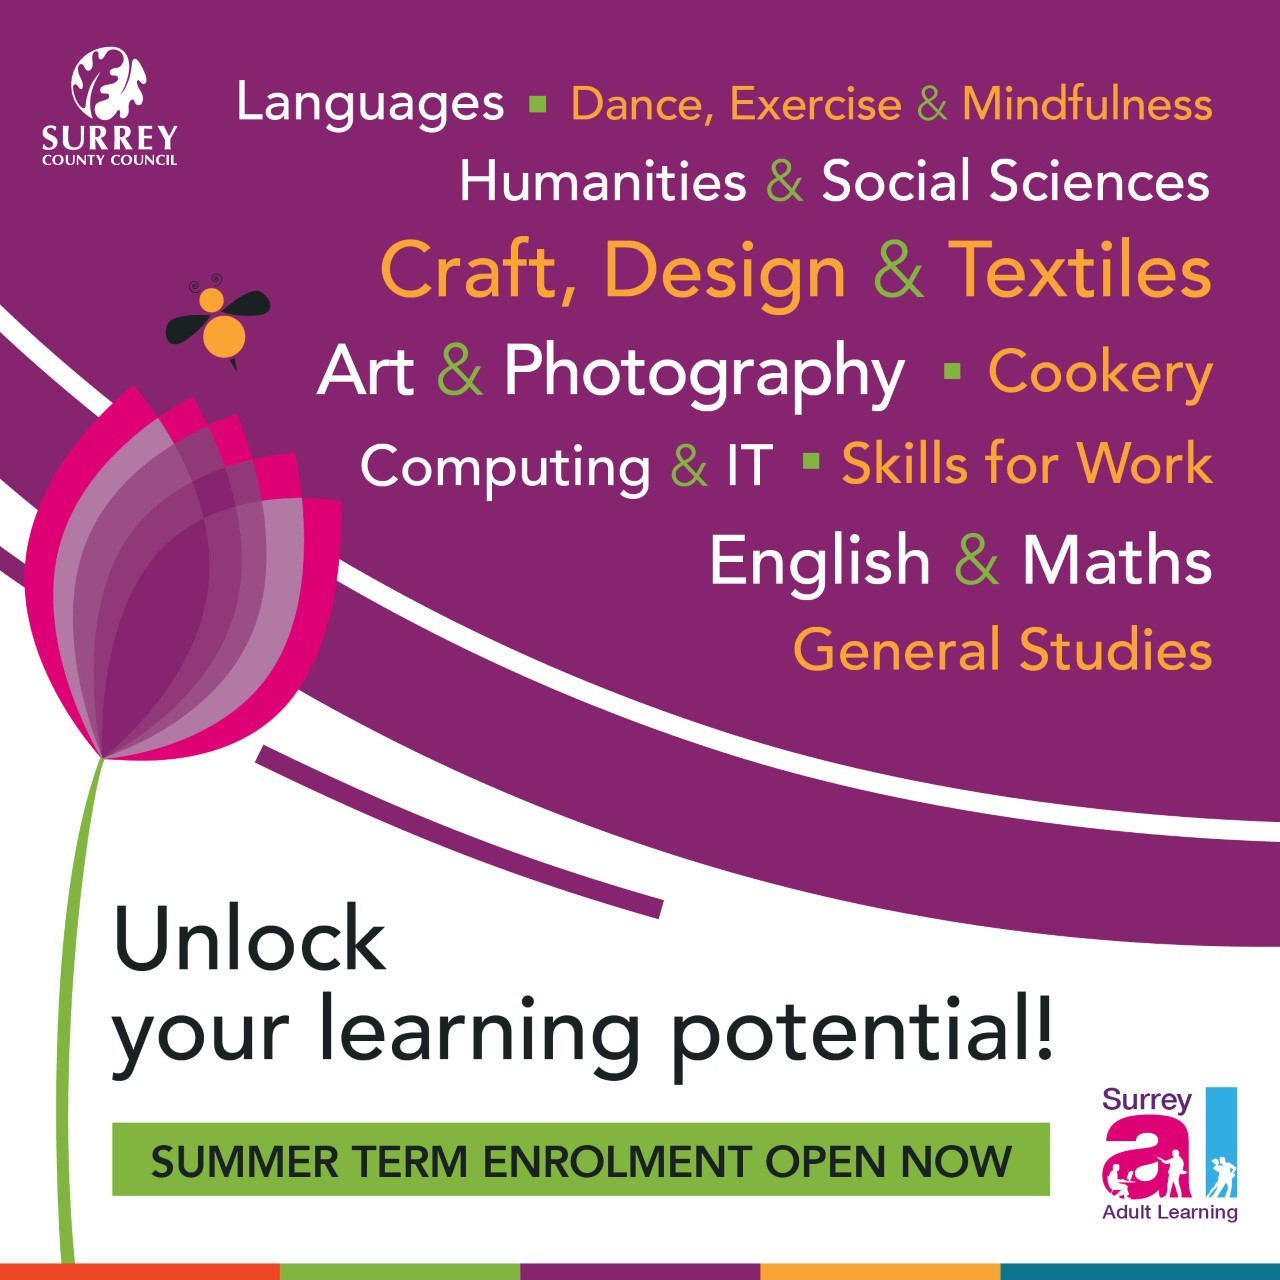 Surrey adult learning summer